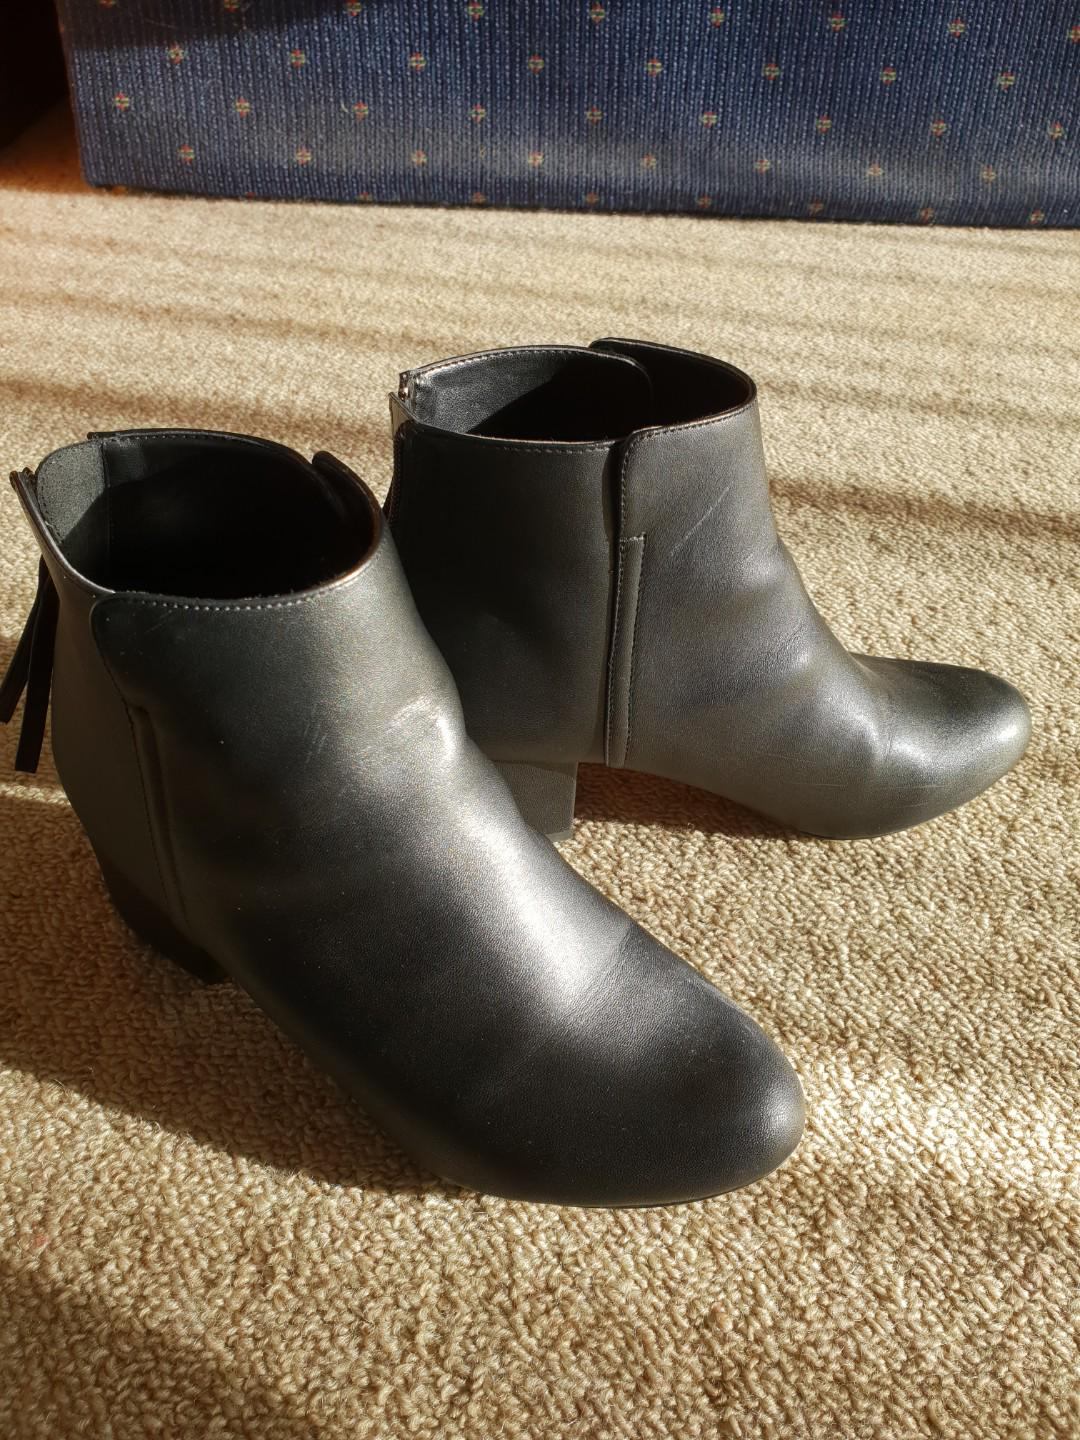 Pulp boots